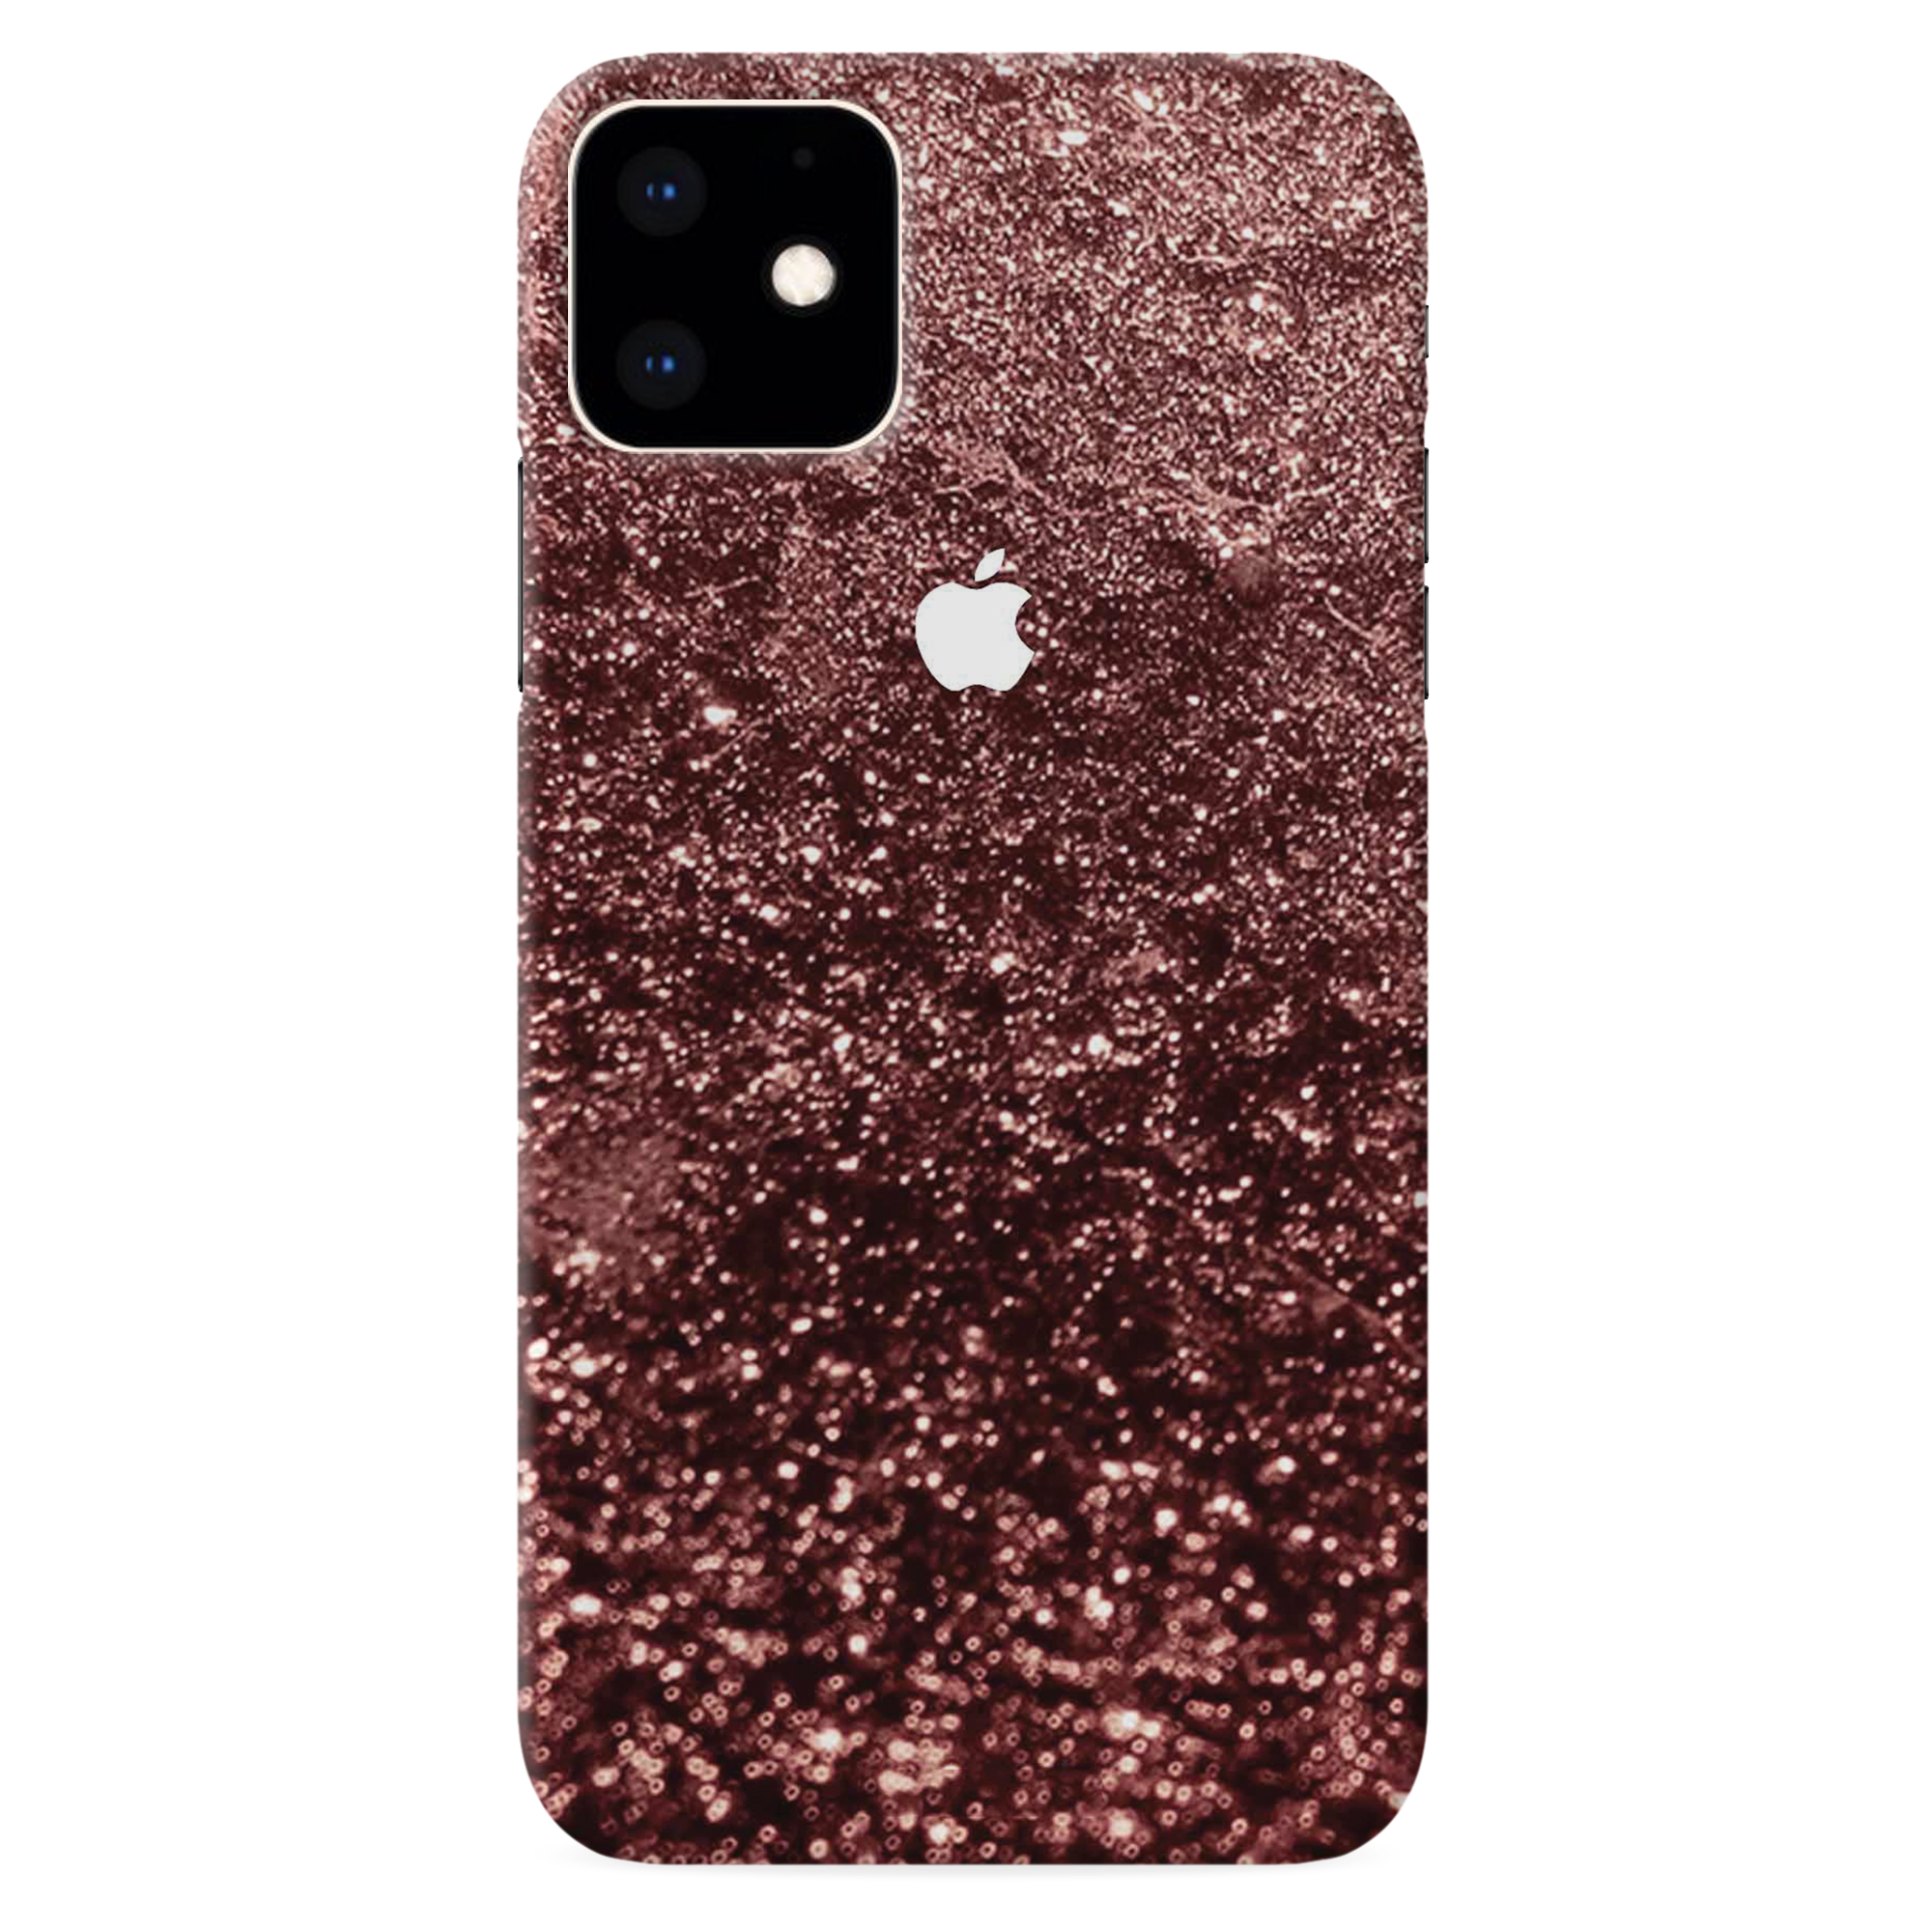 Copper Slim Case And Cover For iPhone 11